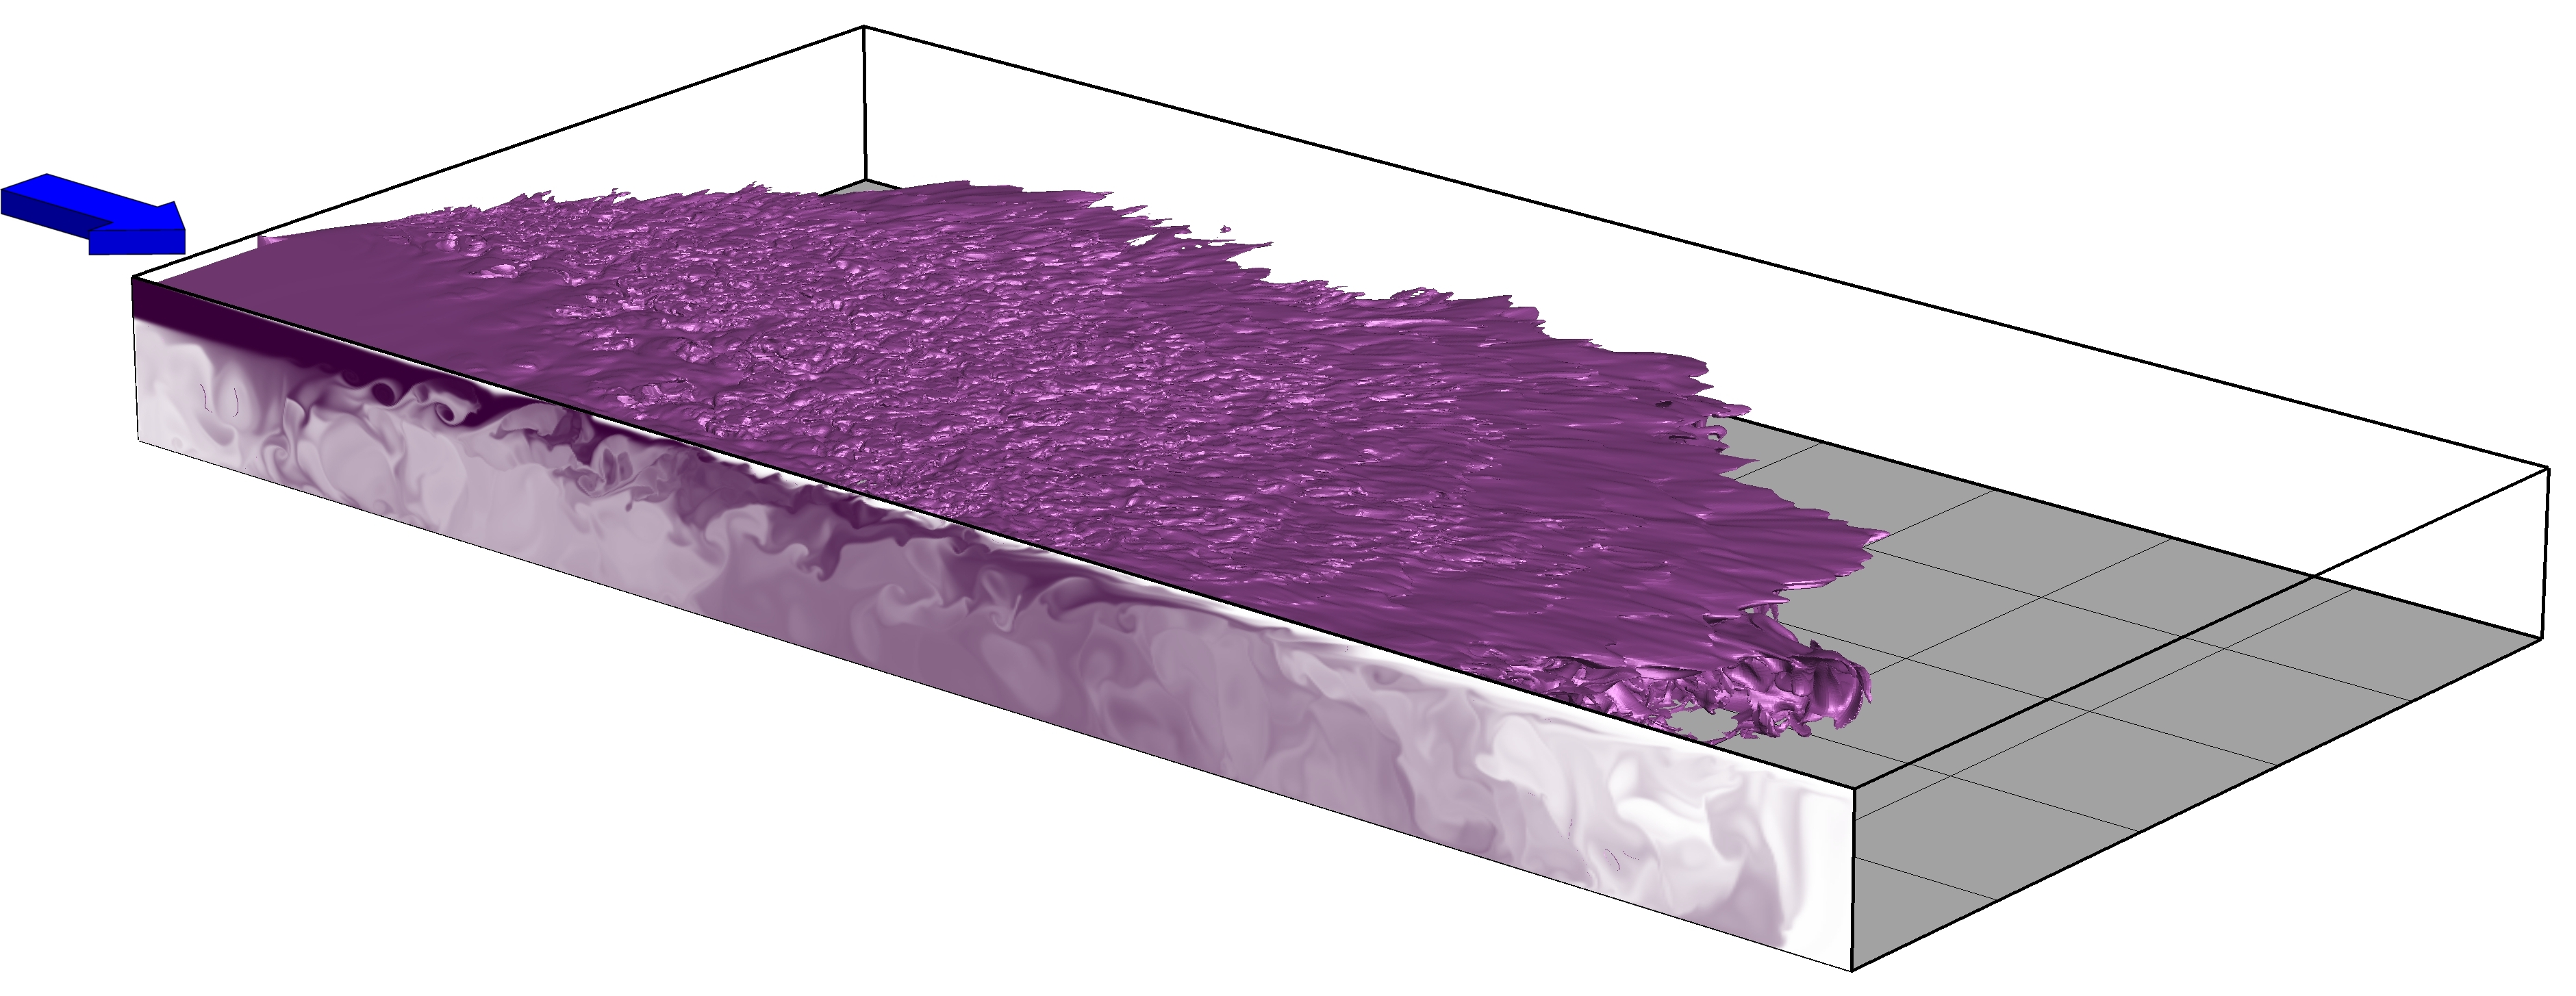 Simulation of Particle-Laden Flows – Institute of Fluid Dynamics